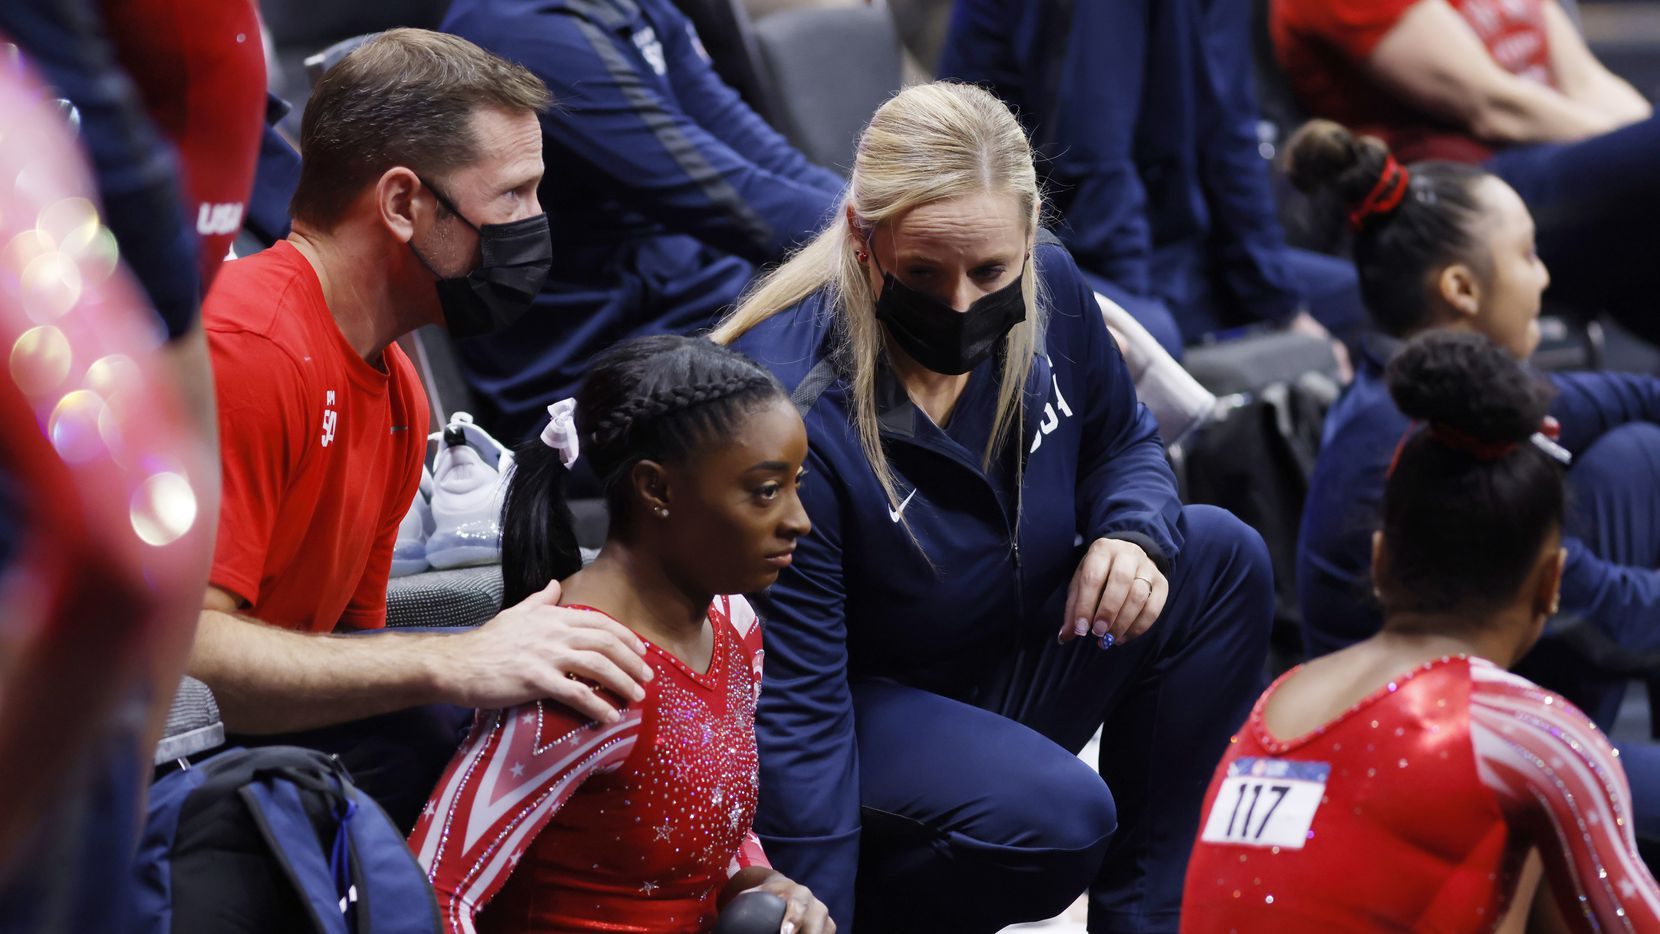 Coaches Laurent Landi (left) and Cecile Landi talk with Simone Biles after she competed on the balance beam during day 2 of the women's 2021 U.S. Olympic Trials at The Dome at America's Center on Sunday, June 27, 2021 in St Louis, Missouri.